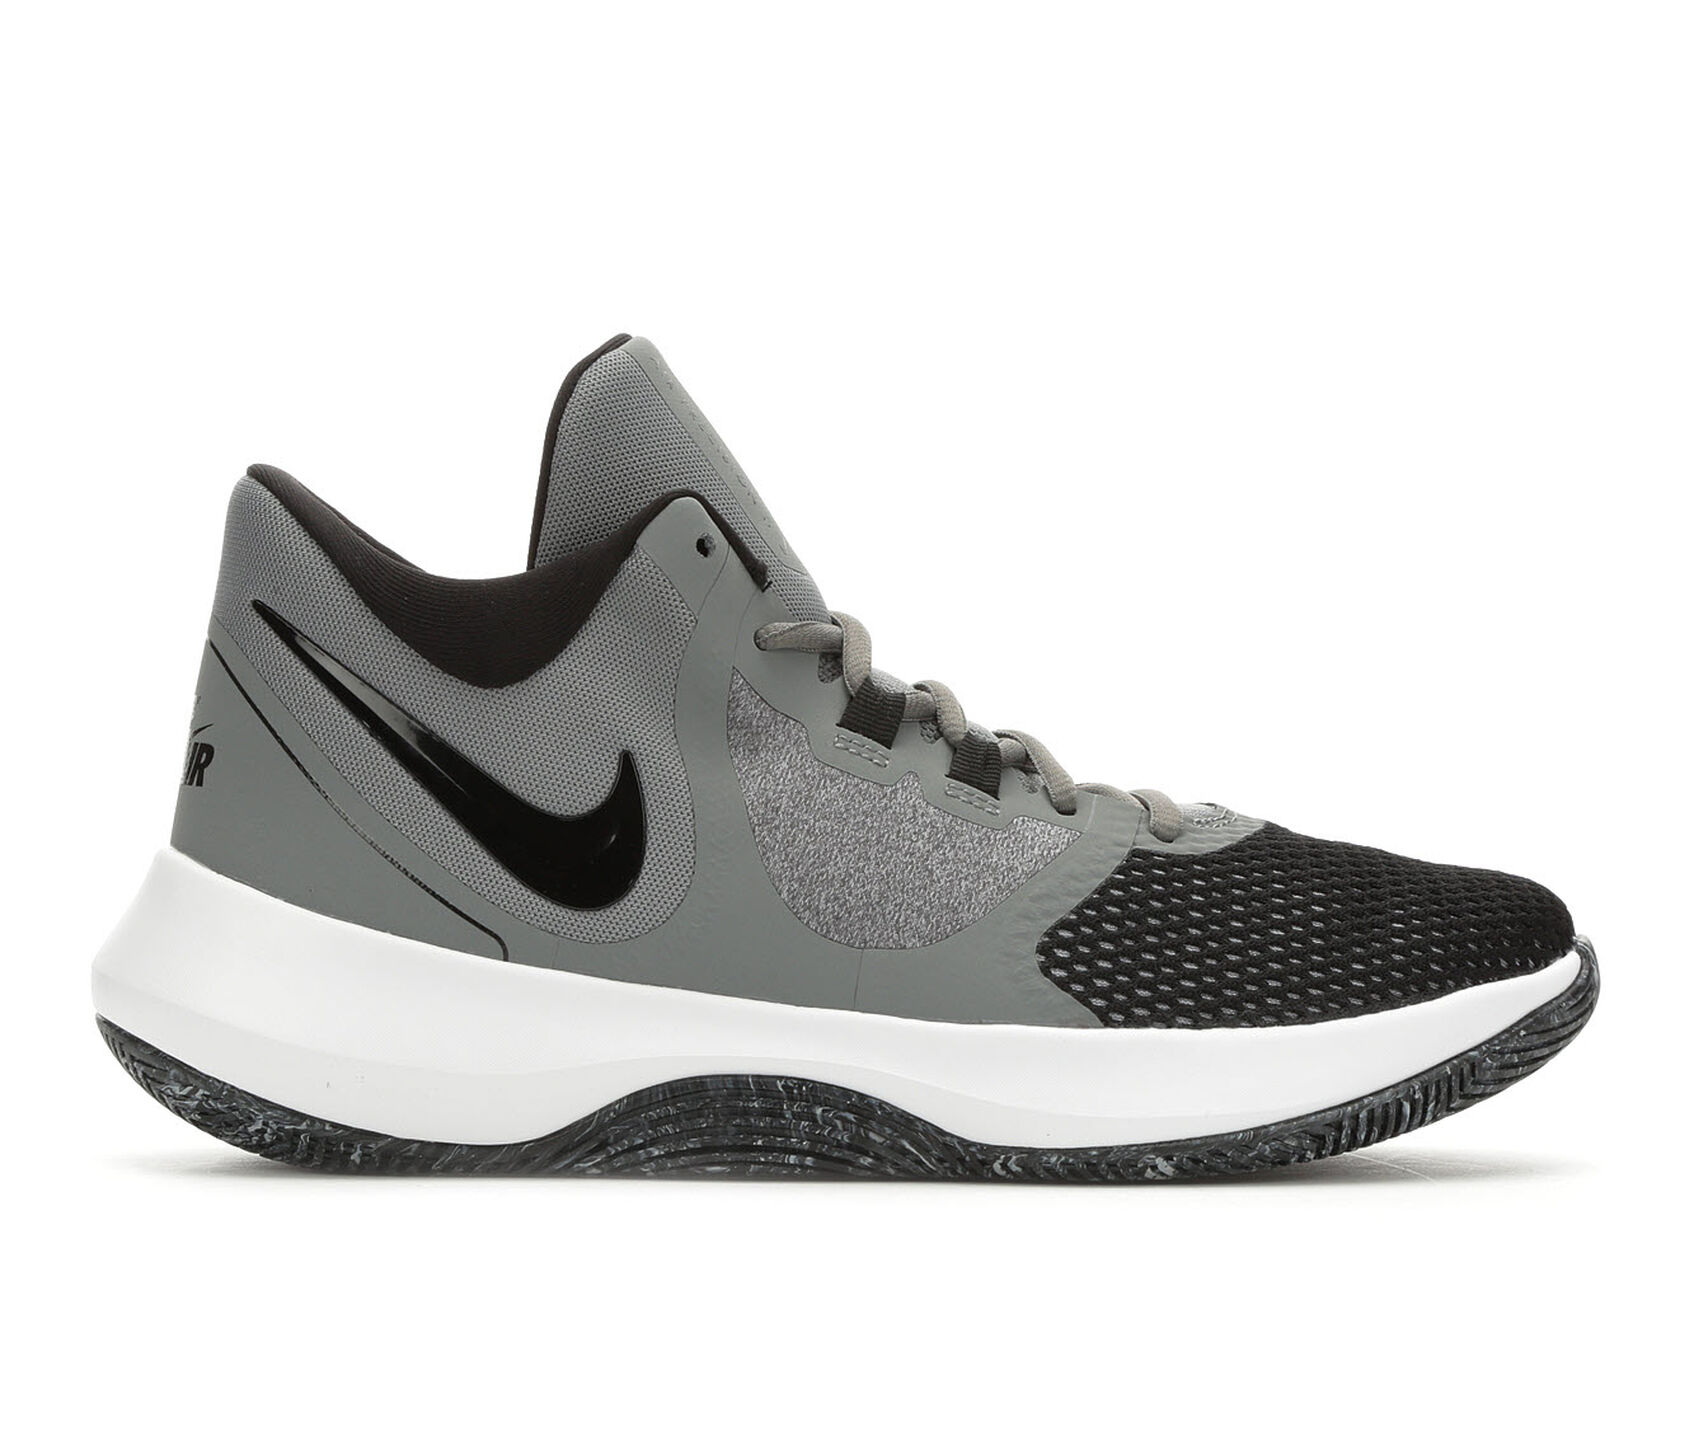 a22d7d9b019f84 Men's Nike Air Precision II High Top Basketball Shoes | Shoe Carnival